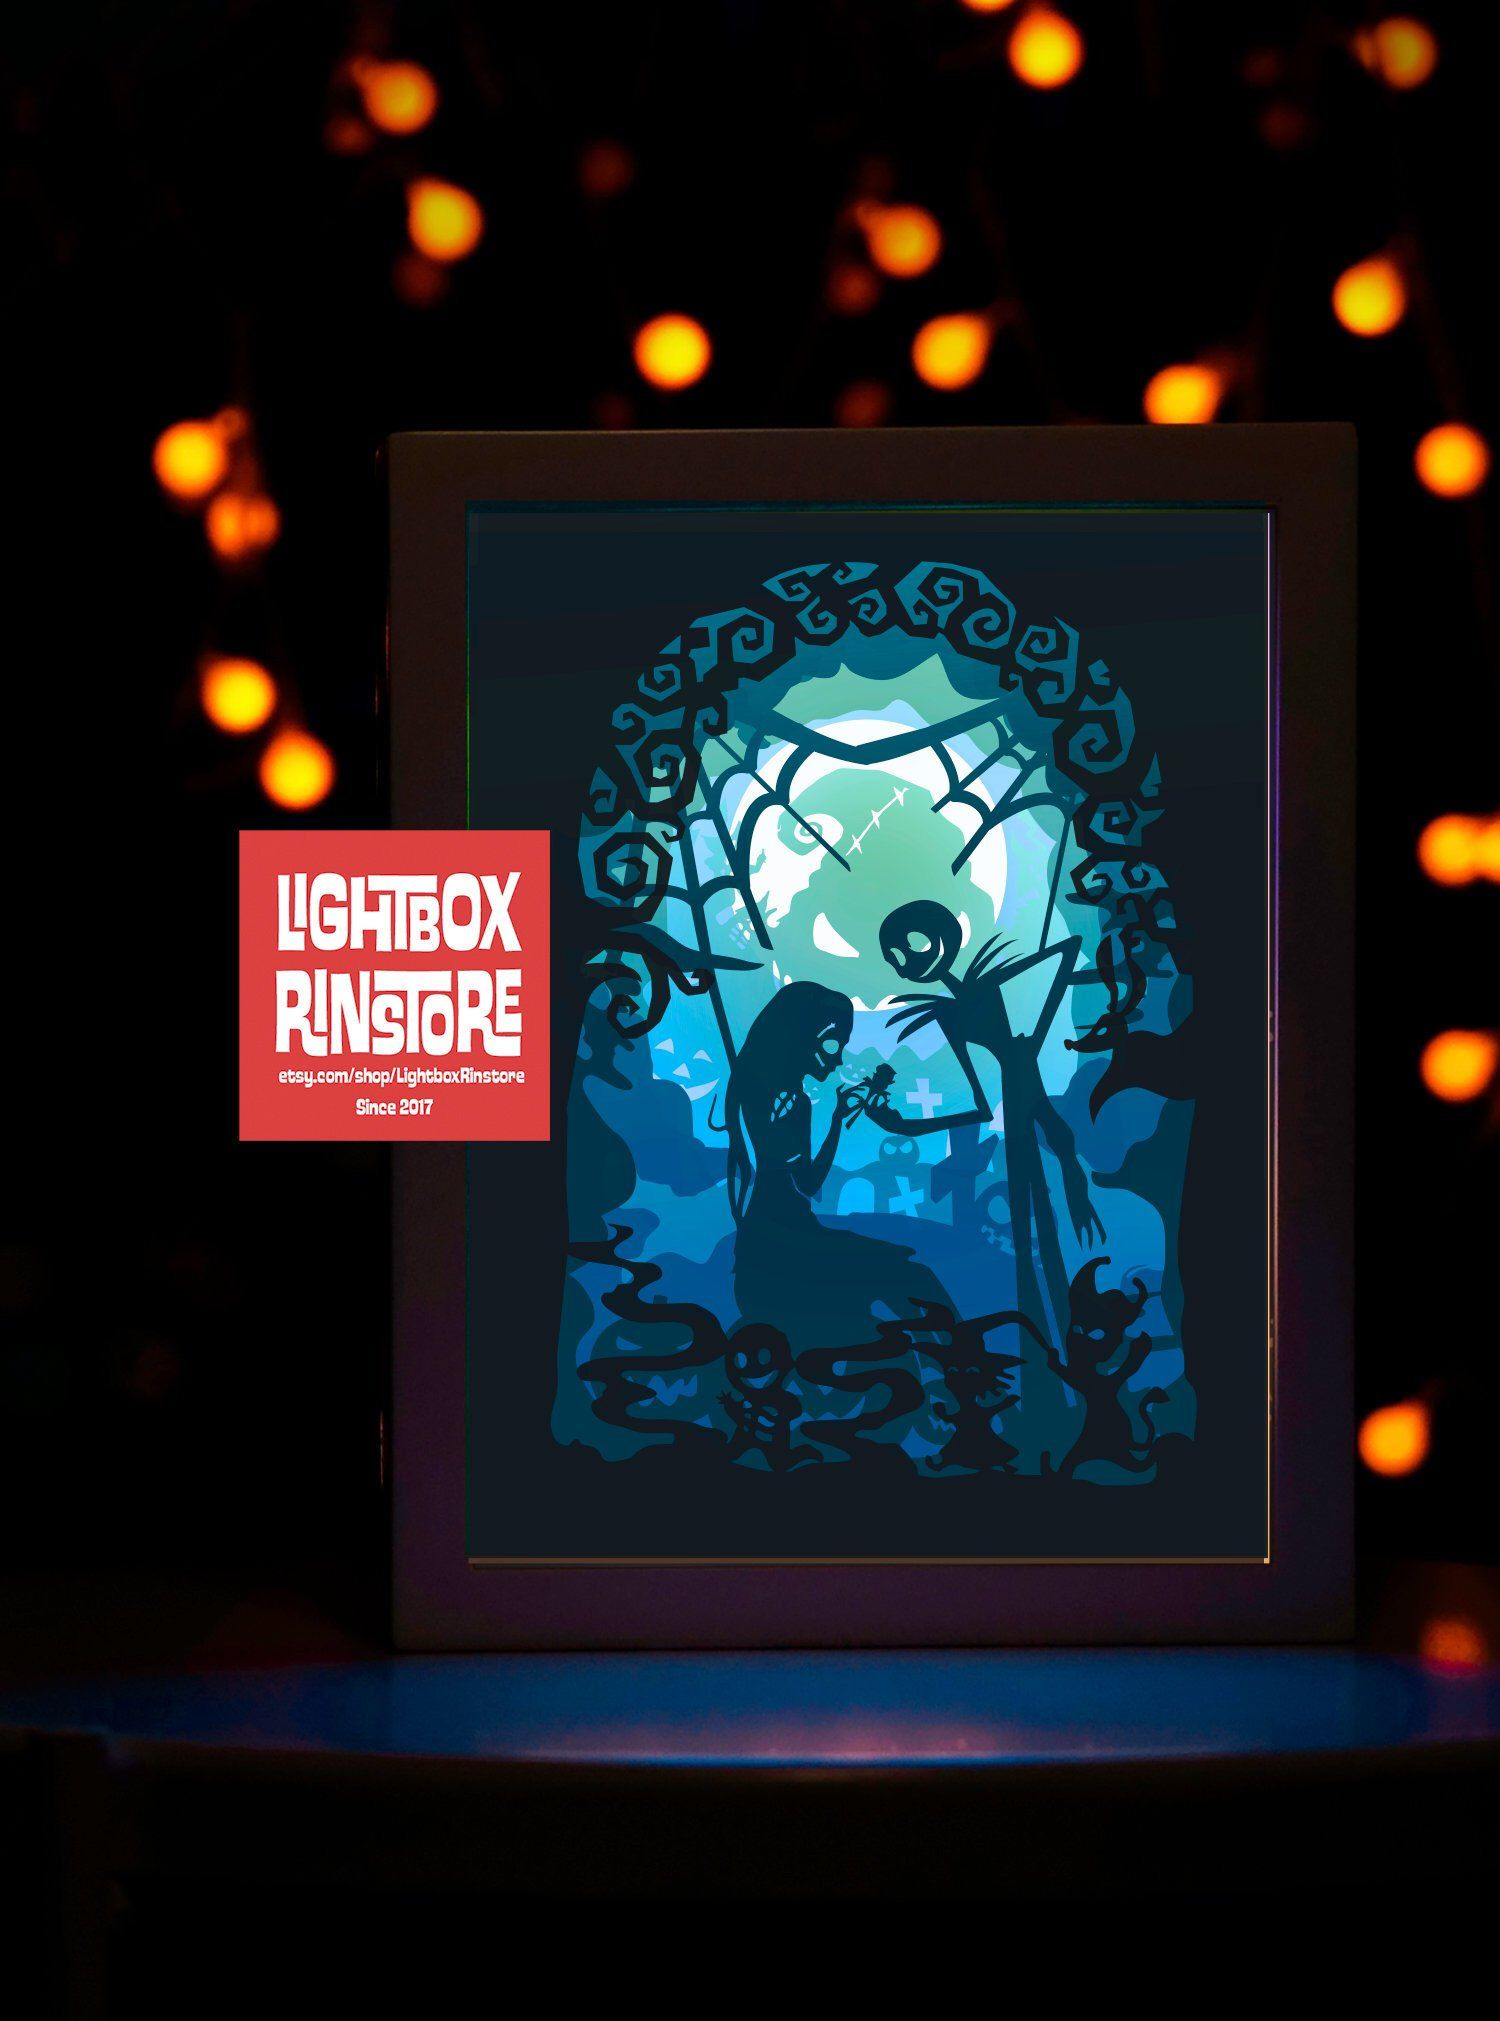 3d shadow box image by Nicerica on Crafts Christmas